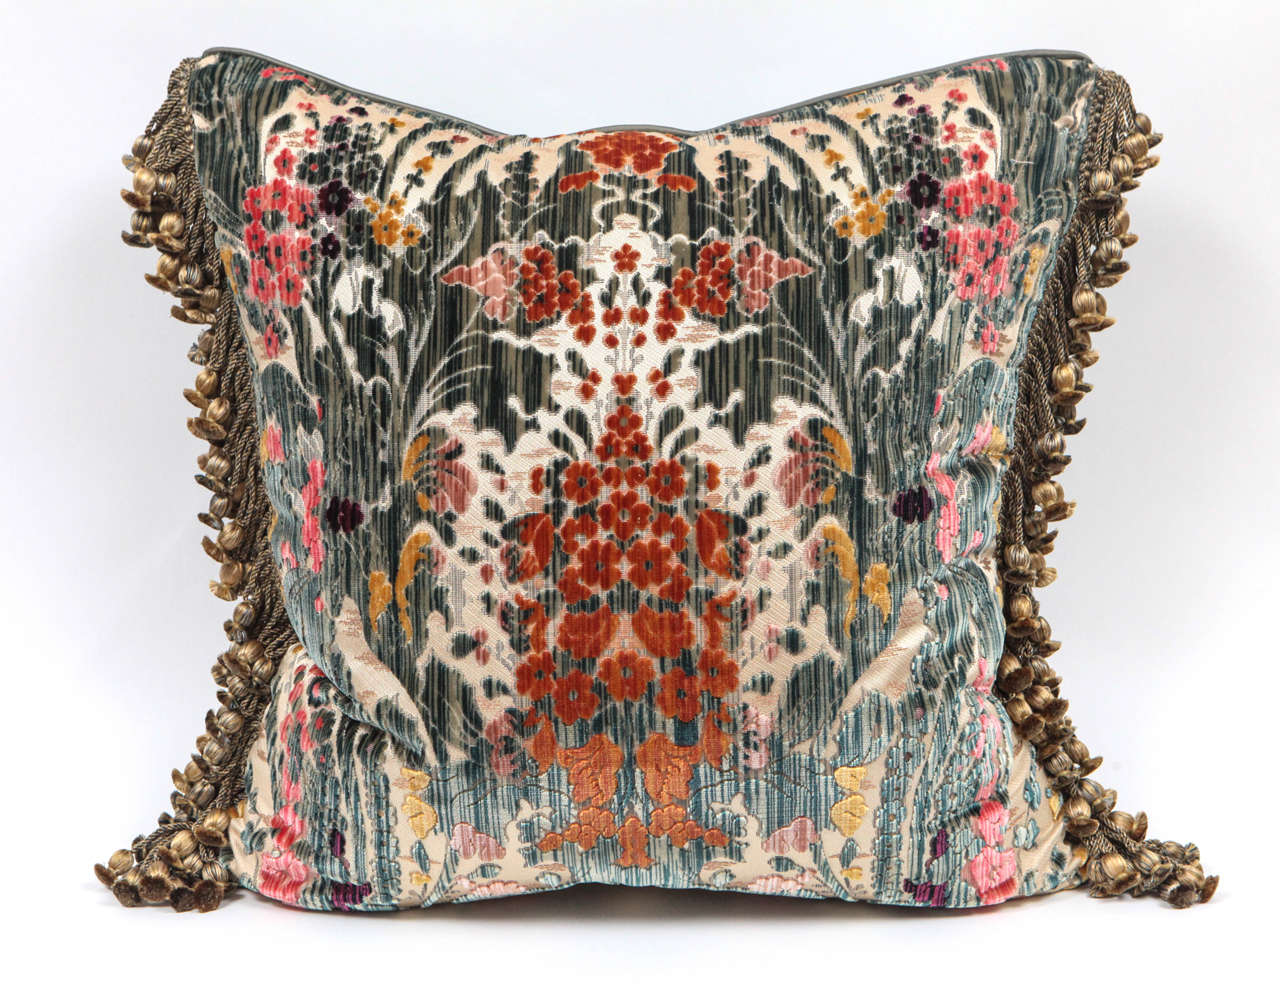 Pair of world-renowned and prominent fabric maker Luigi Bevilacqua Italian silk velvet pillows. Decorative tassel silk trim has been applied to finish the edges. These pillows are sold as a pair.